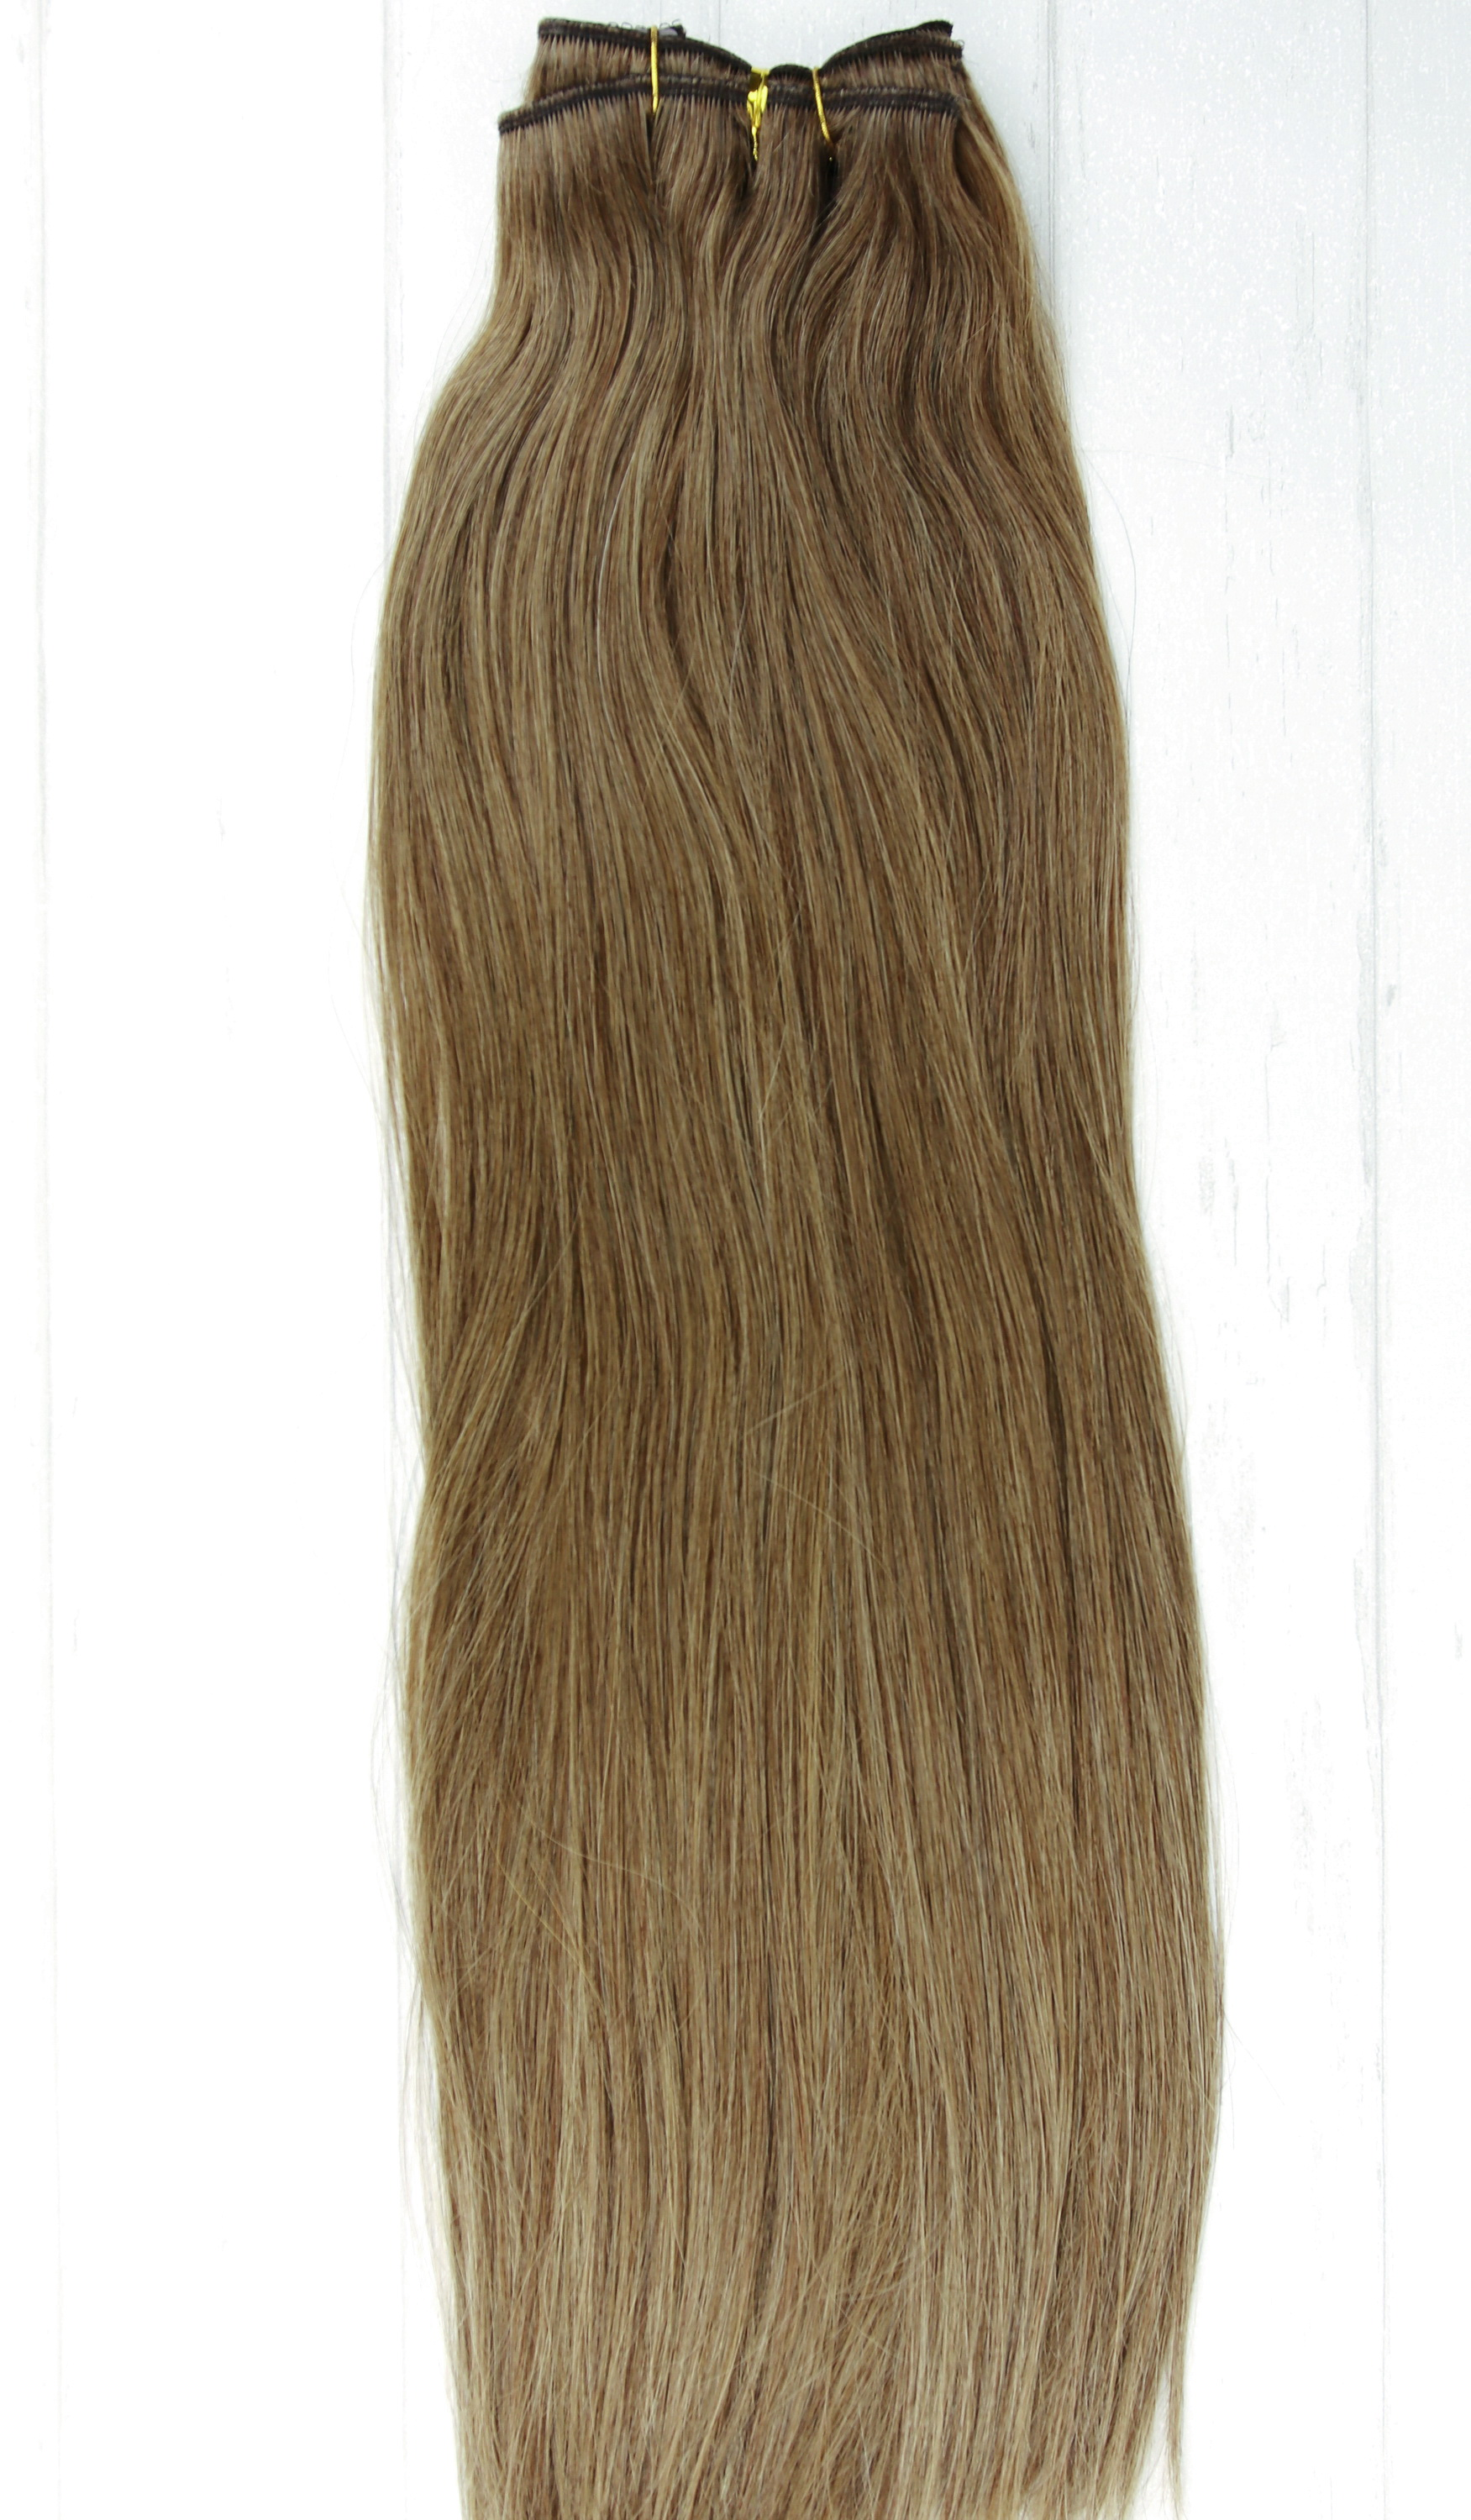 8 Light Brown Clip In Hair Extensions 120g 380g 26 28 30 Inches